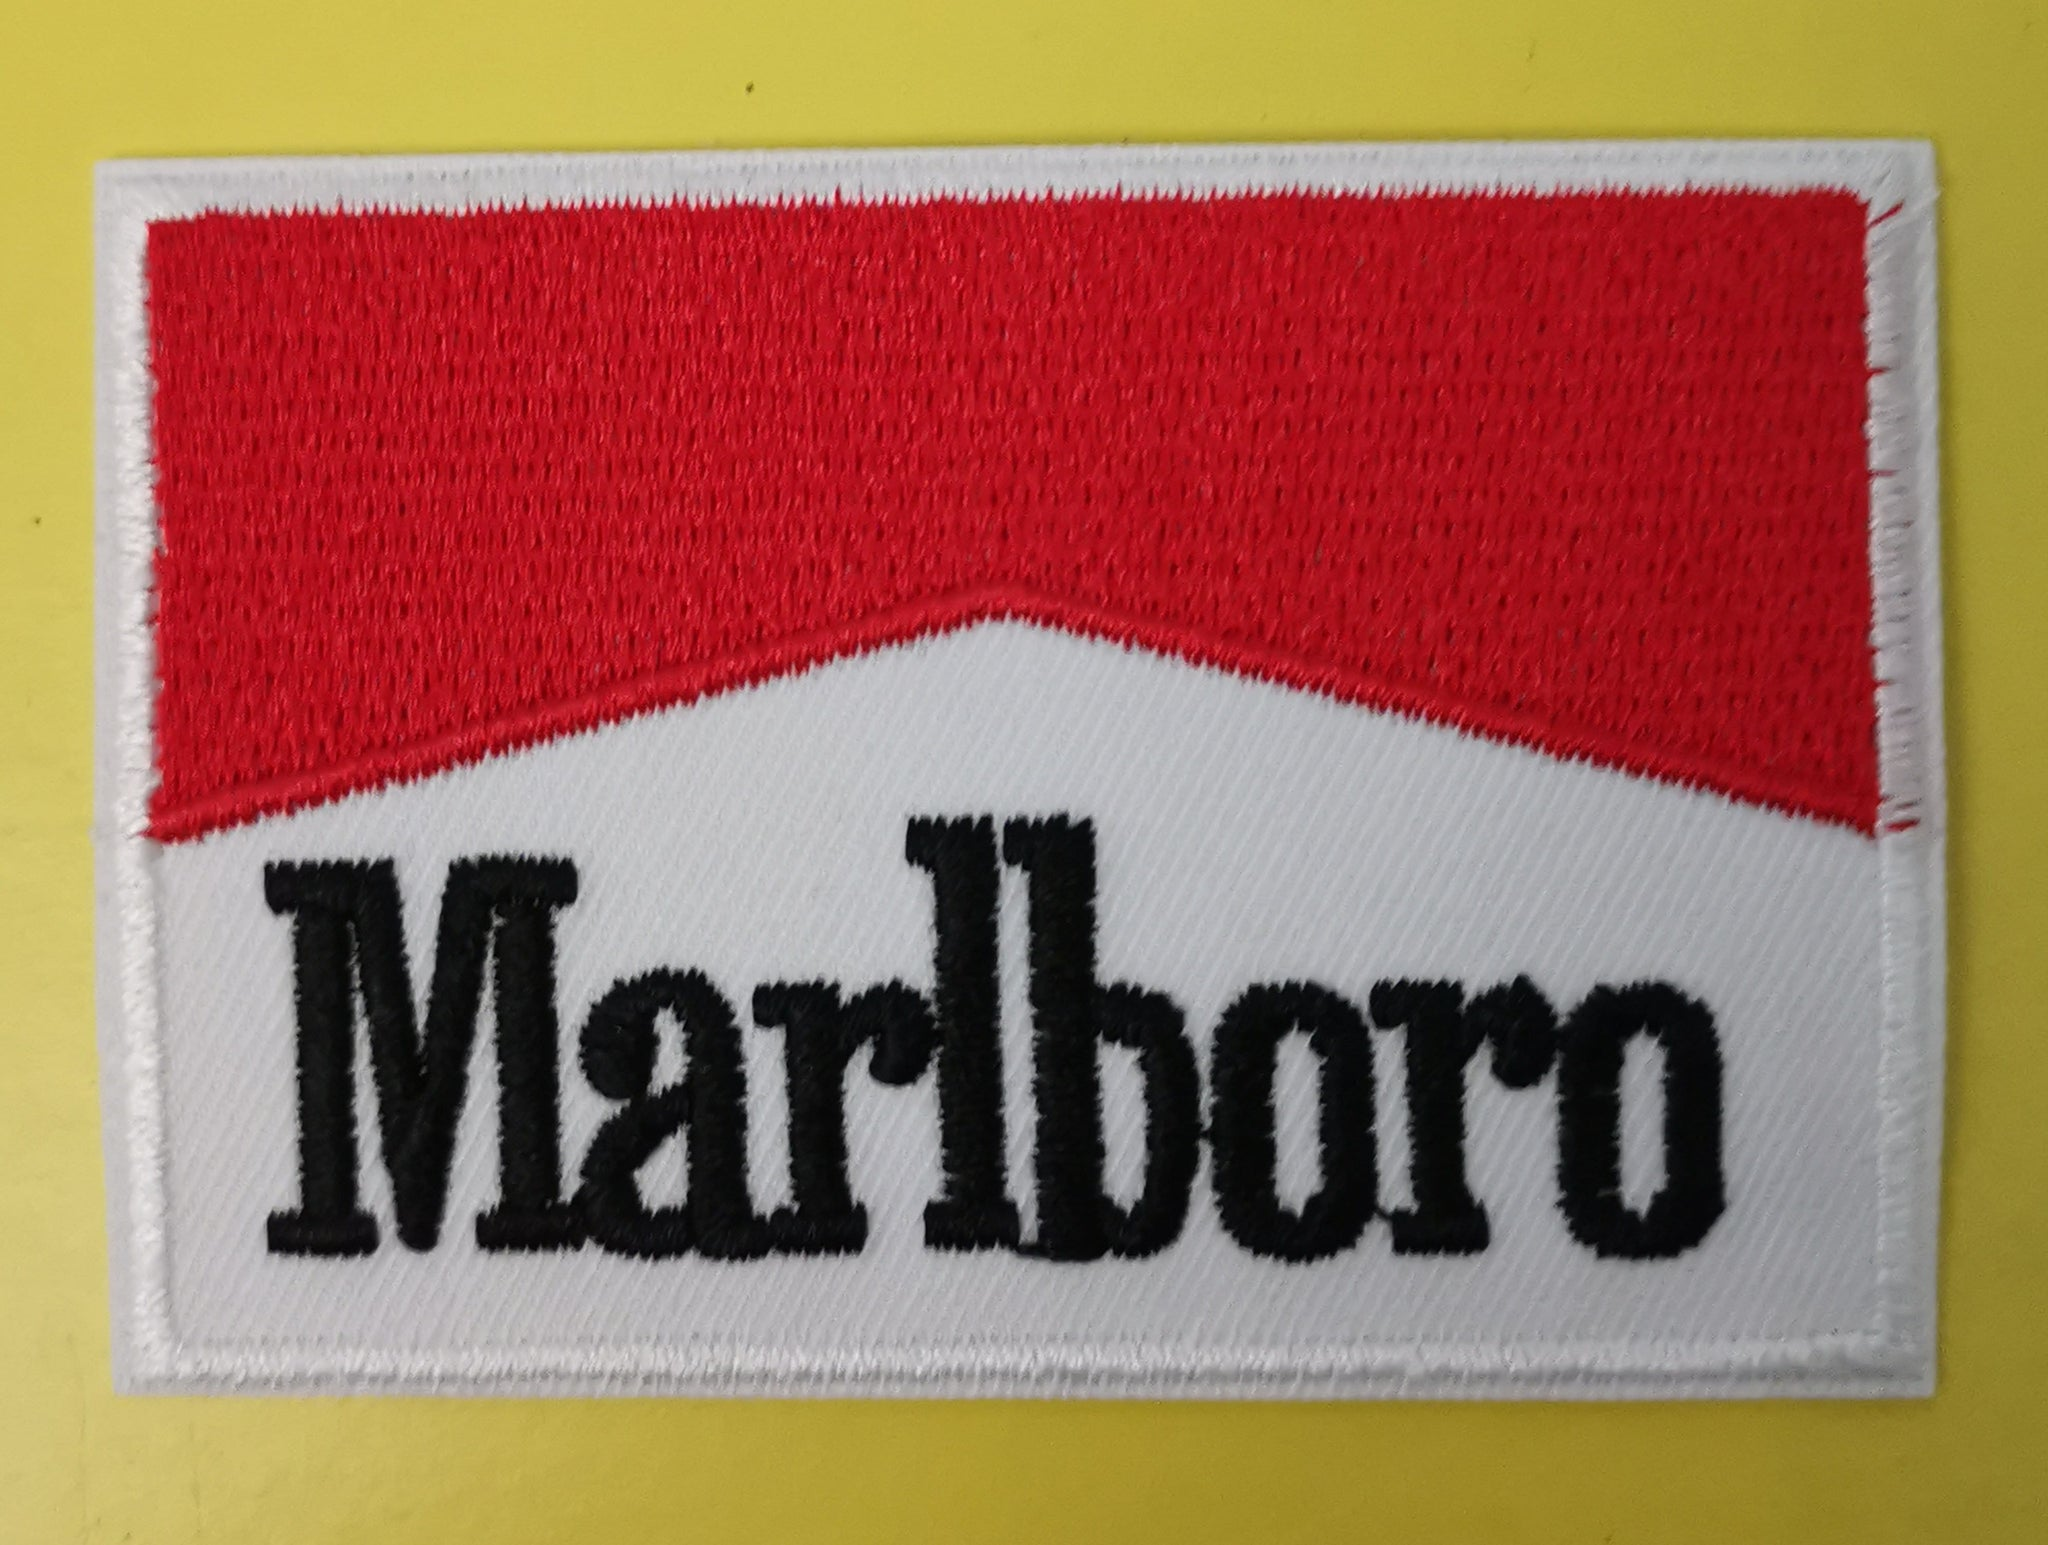 Marlboro 2 Embroidered Iron on Patch